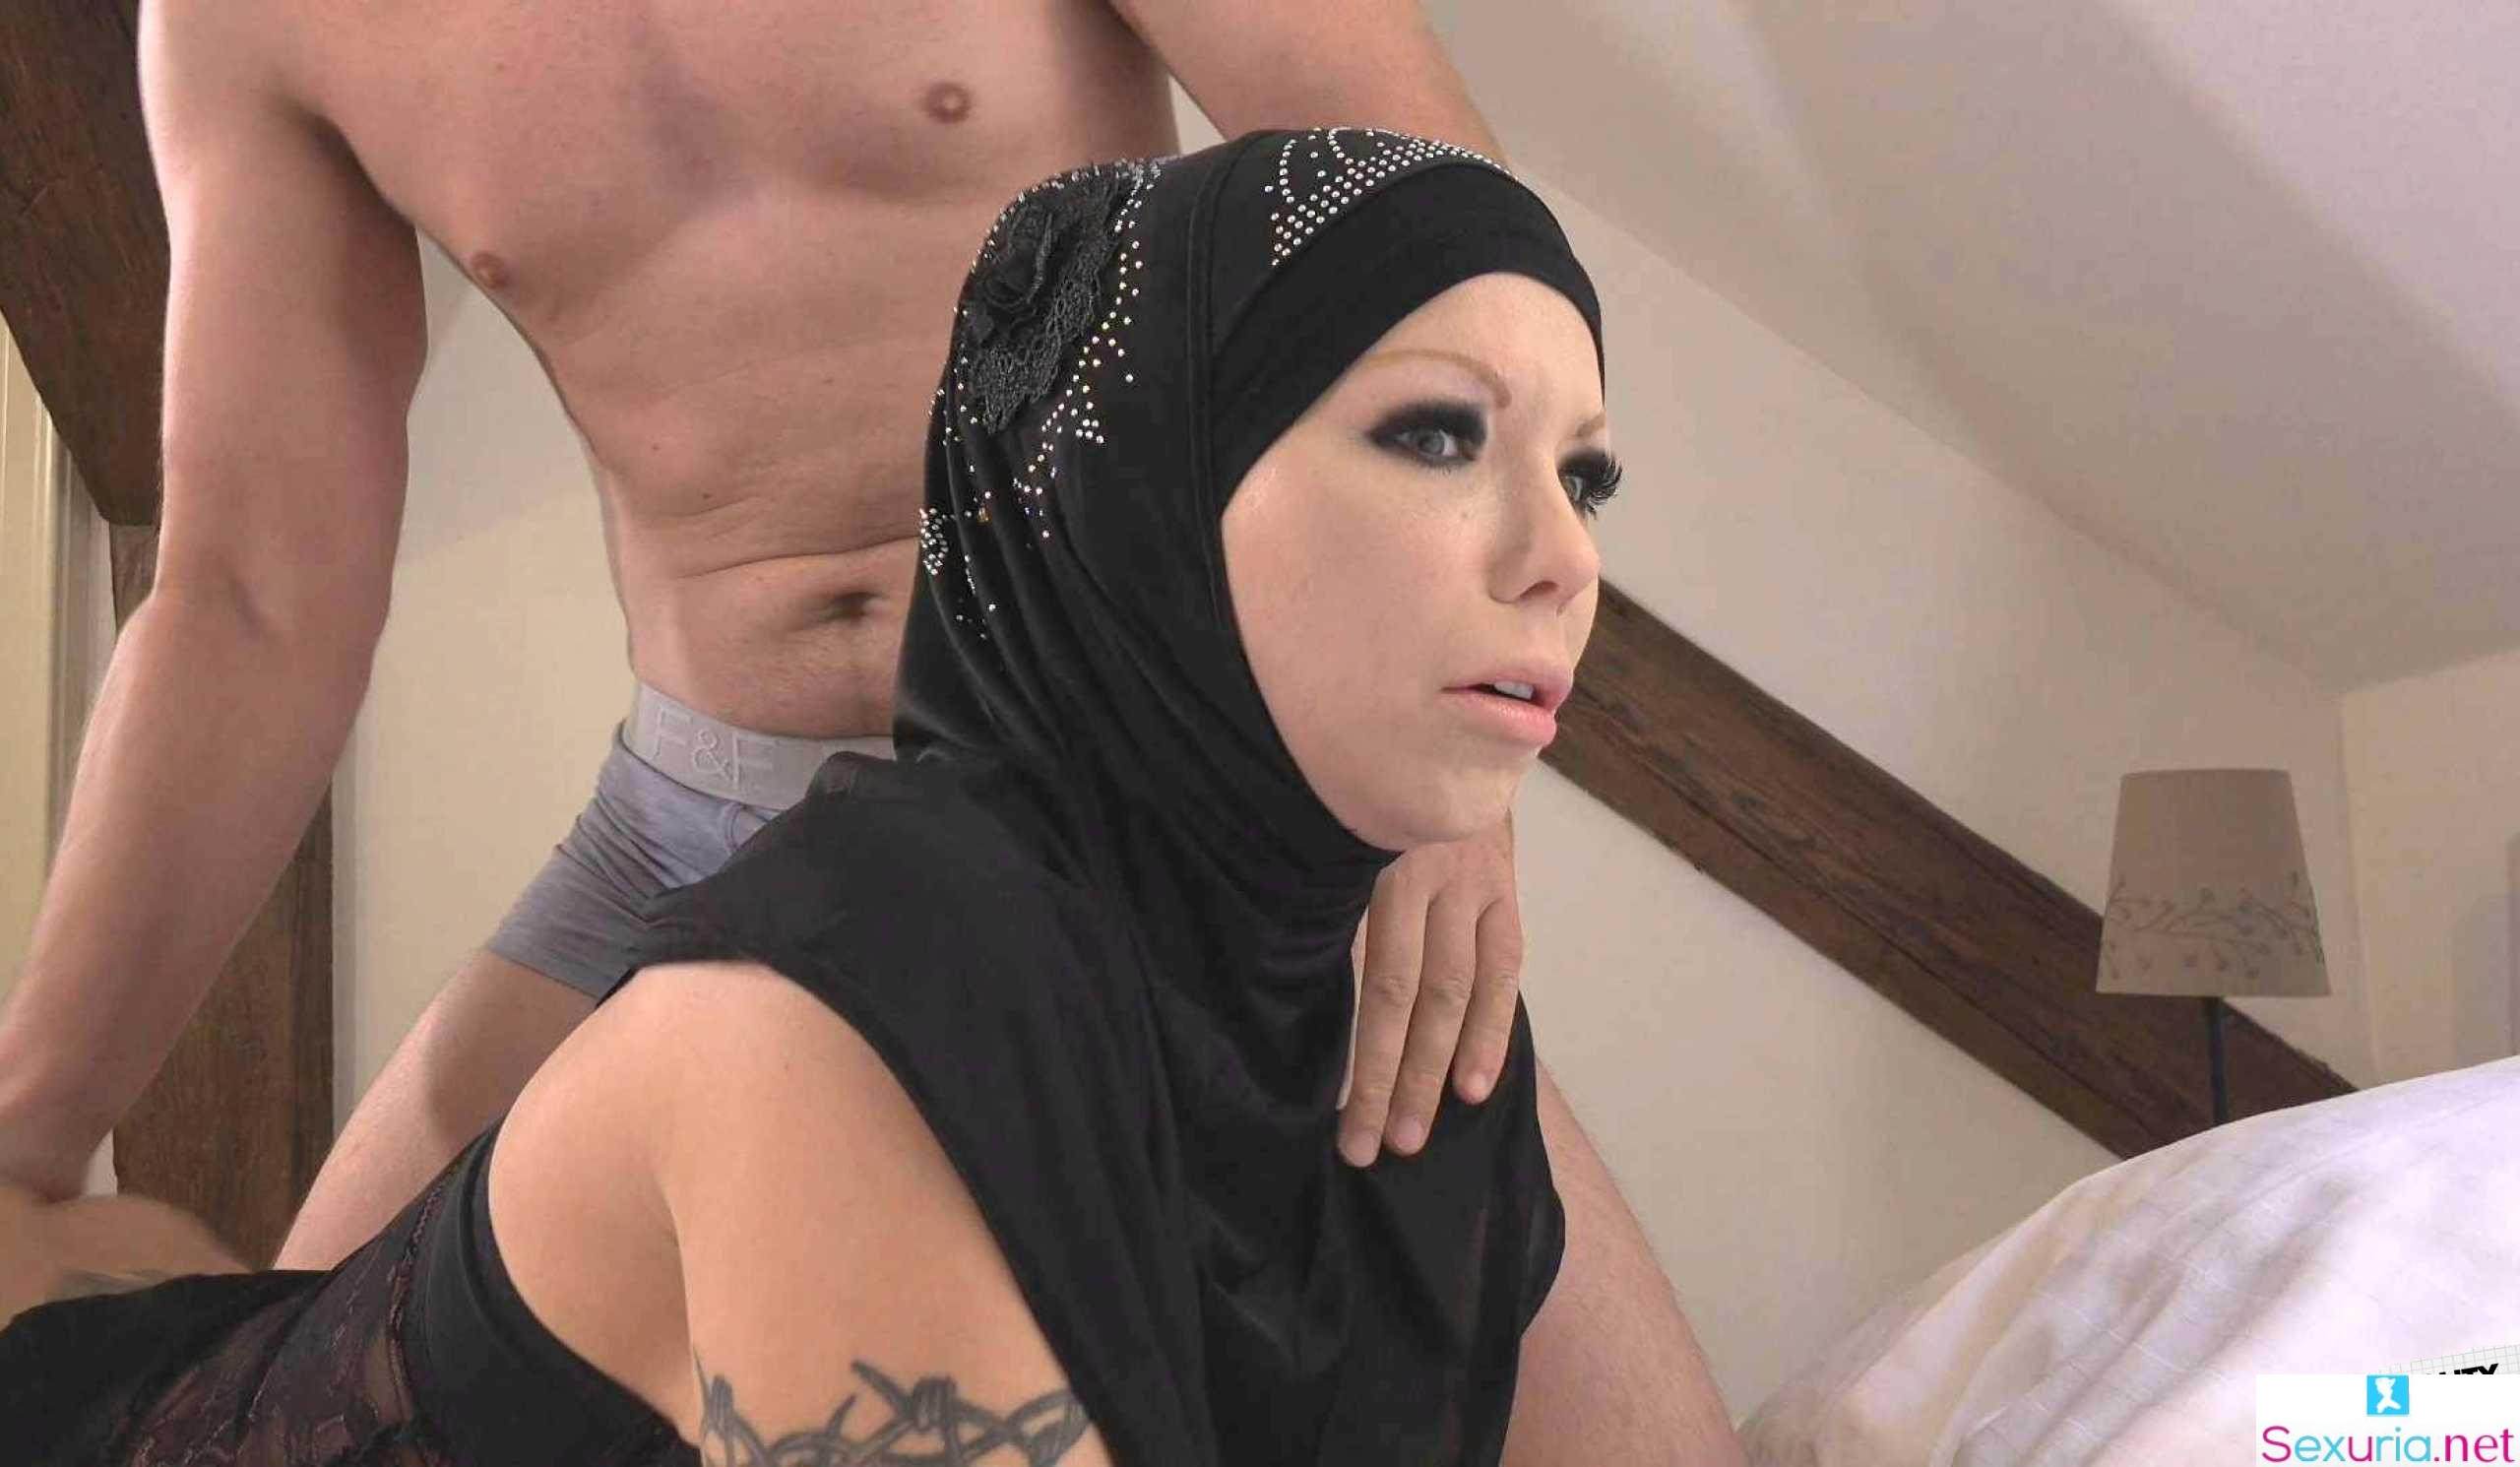 Sex With Muslims - Barbie Sins